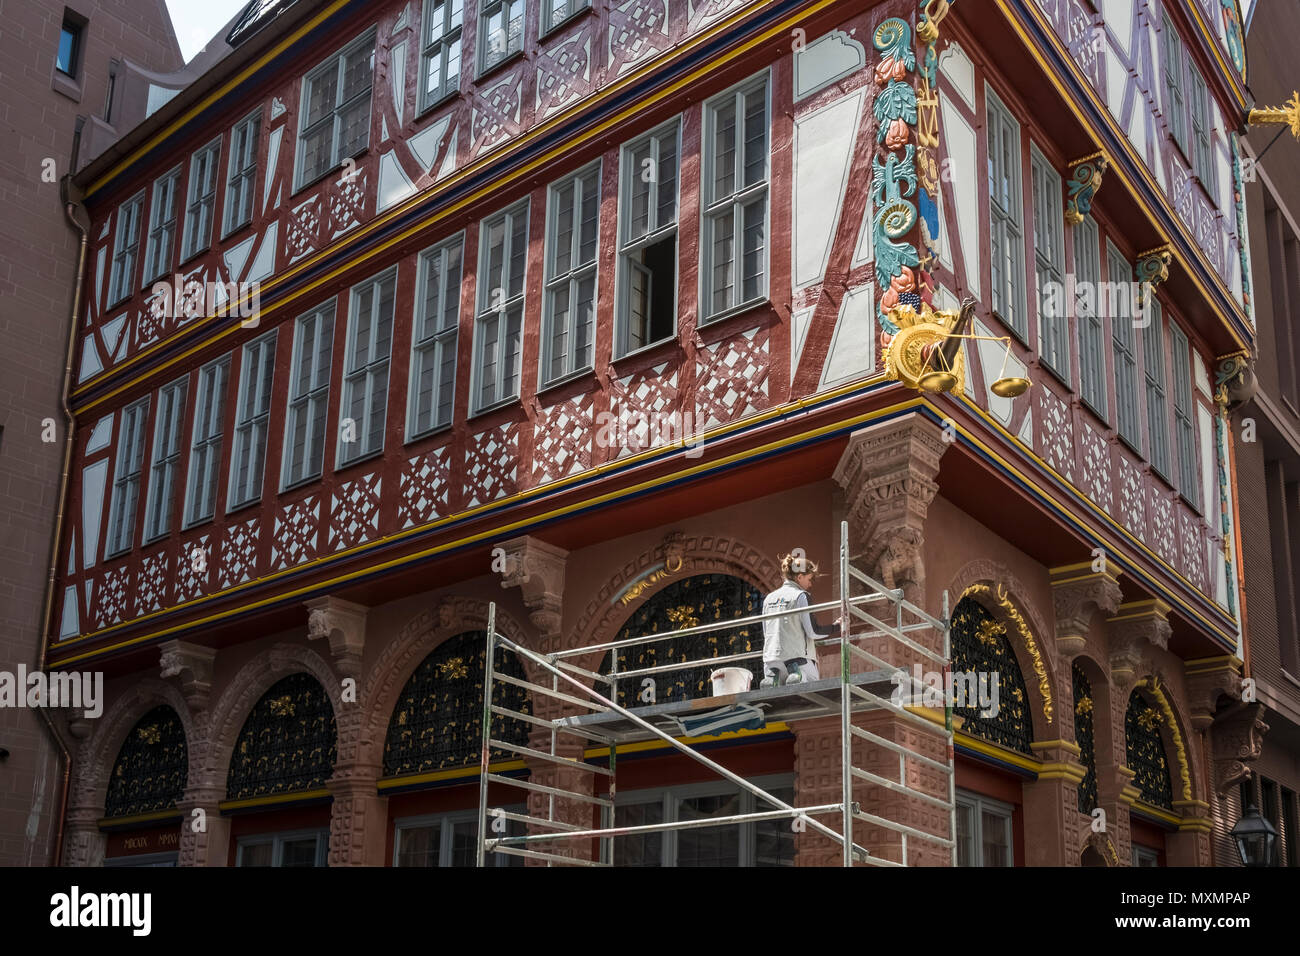 Architectural redevelopment work in the new DomRomer Quarter featuring traditional half timber buildings, Frankfurt am Main, Hesse, Darmstadt, Germany - Stock Image